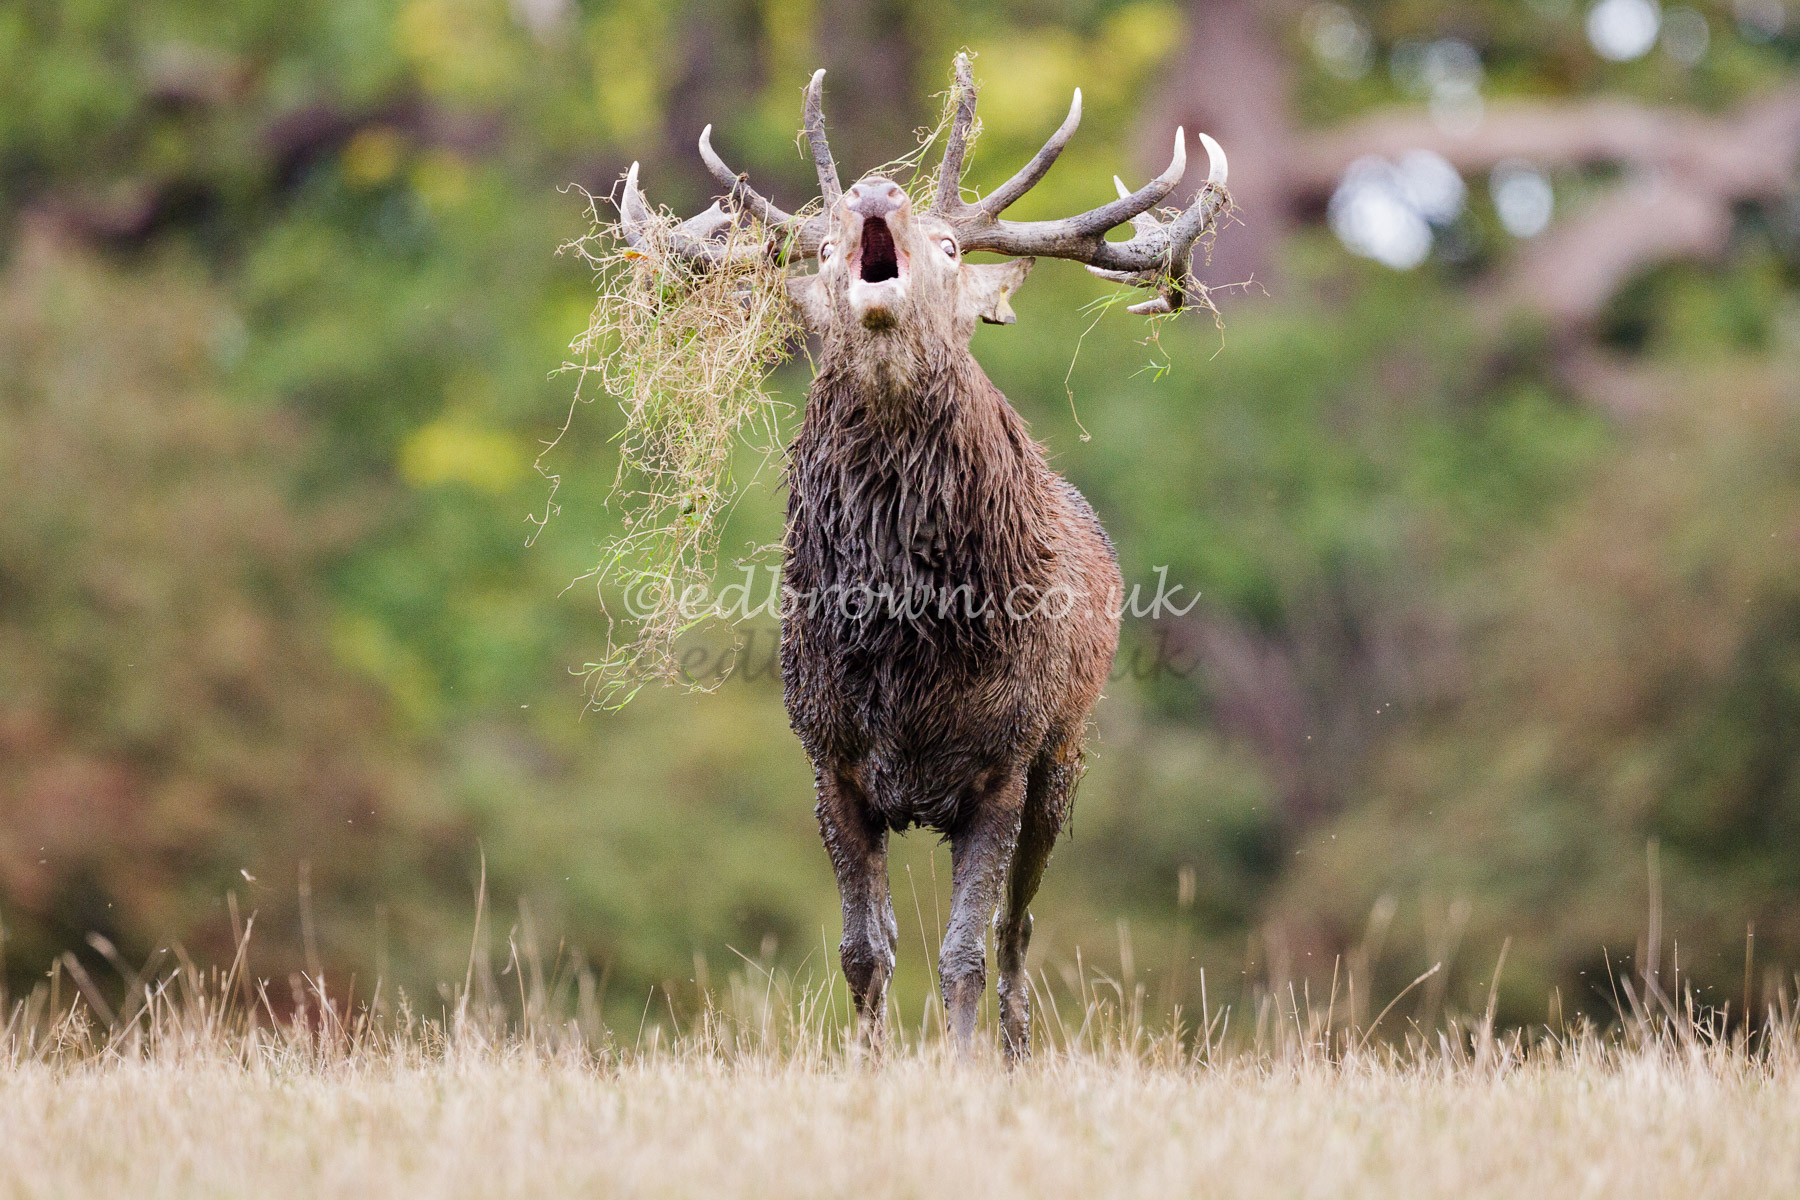 A Red Deer (Cervus elaphus) stag in Windsor Great Park, antlers covered with grass, bellowing during the annual rut. Berkshire, UK